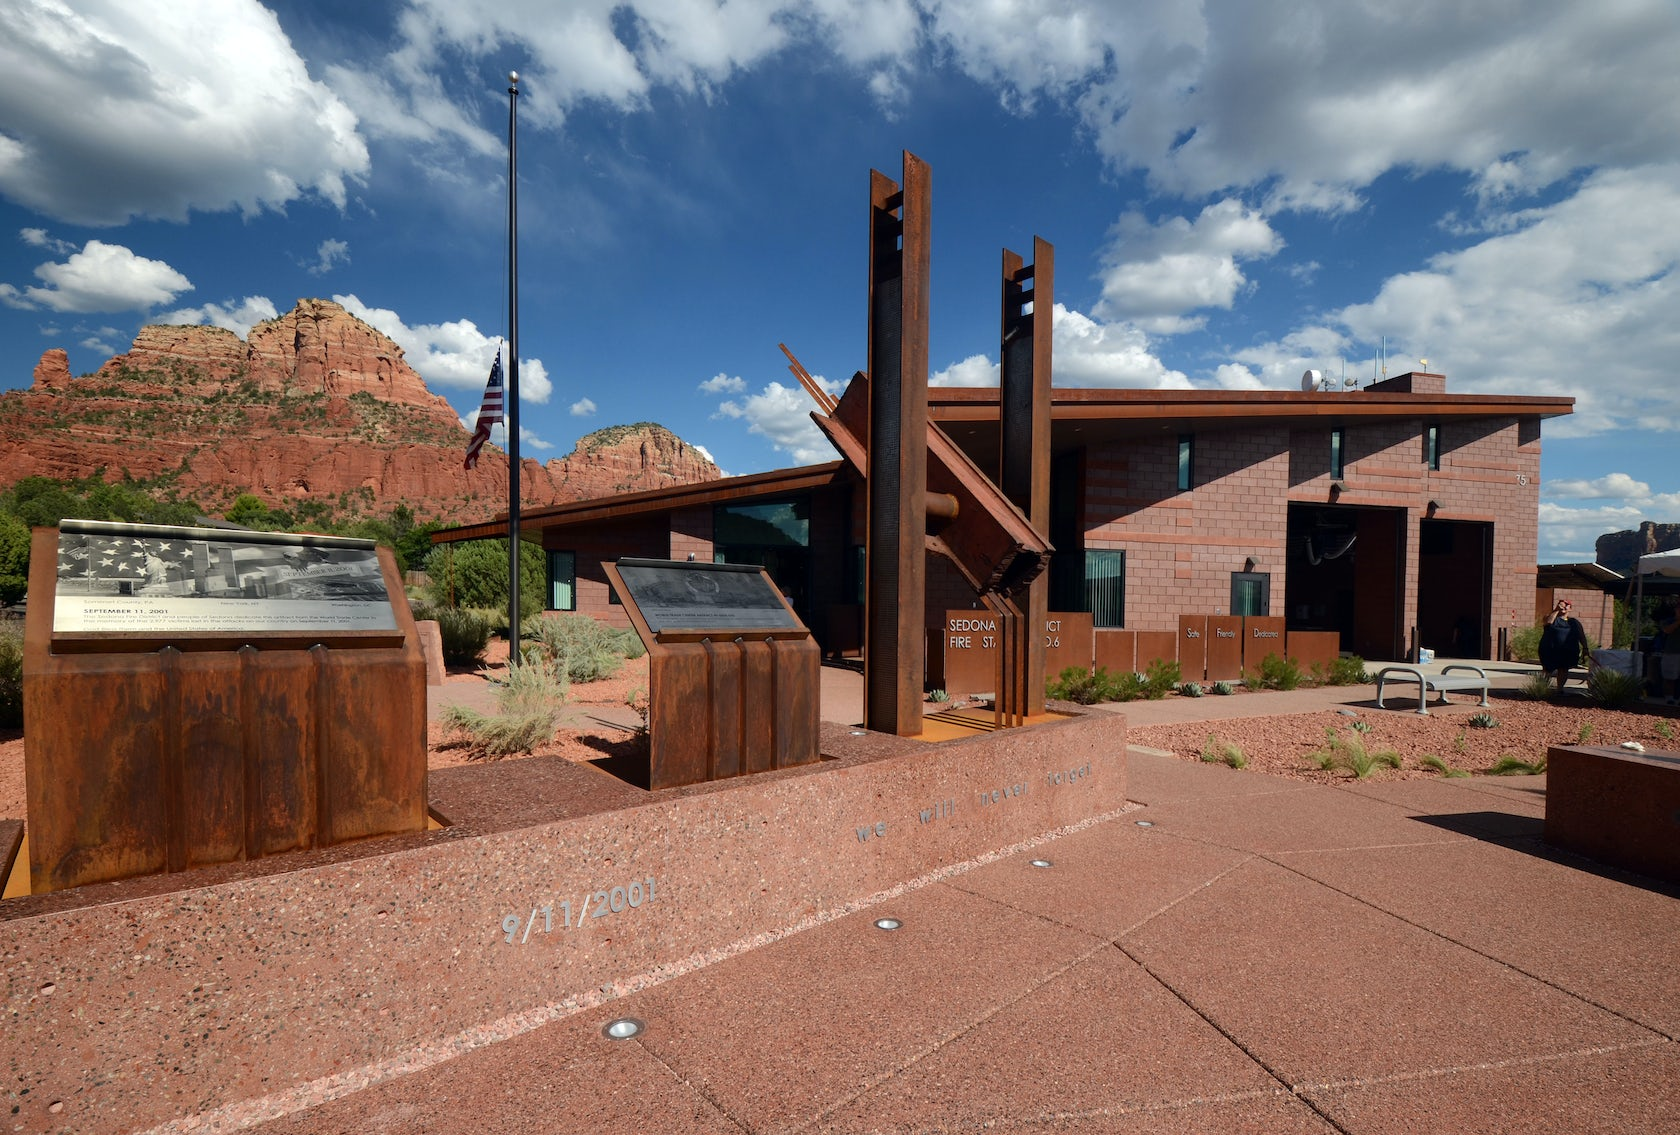 Sedona station 6 911 memorial architizer for Sedona architects